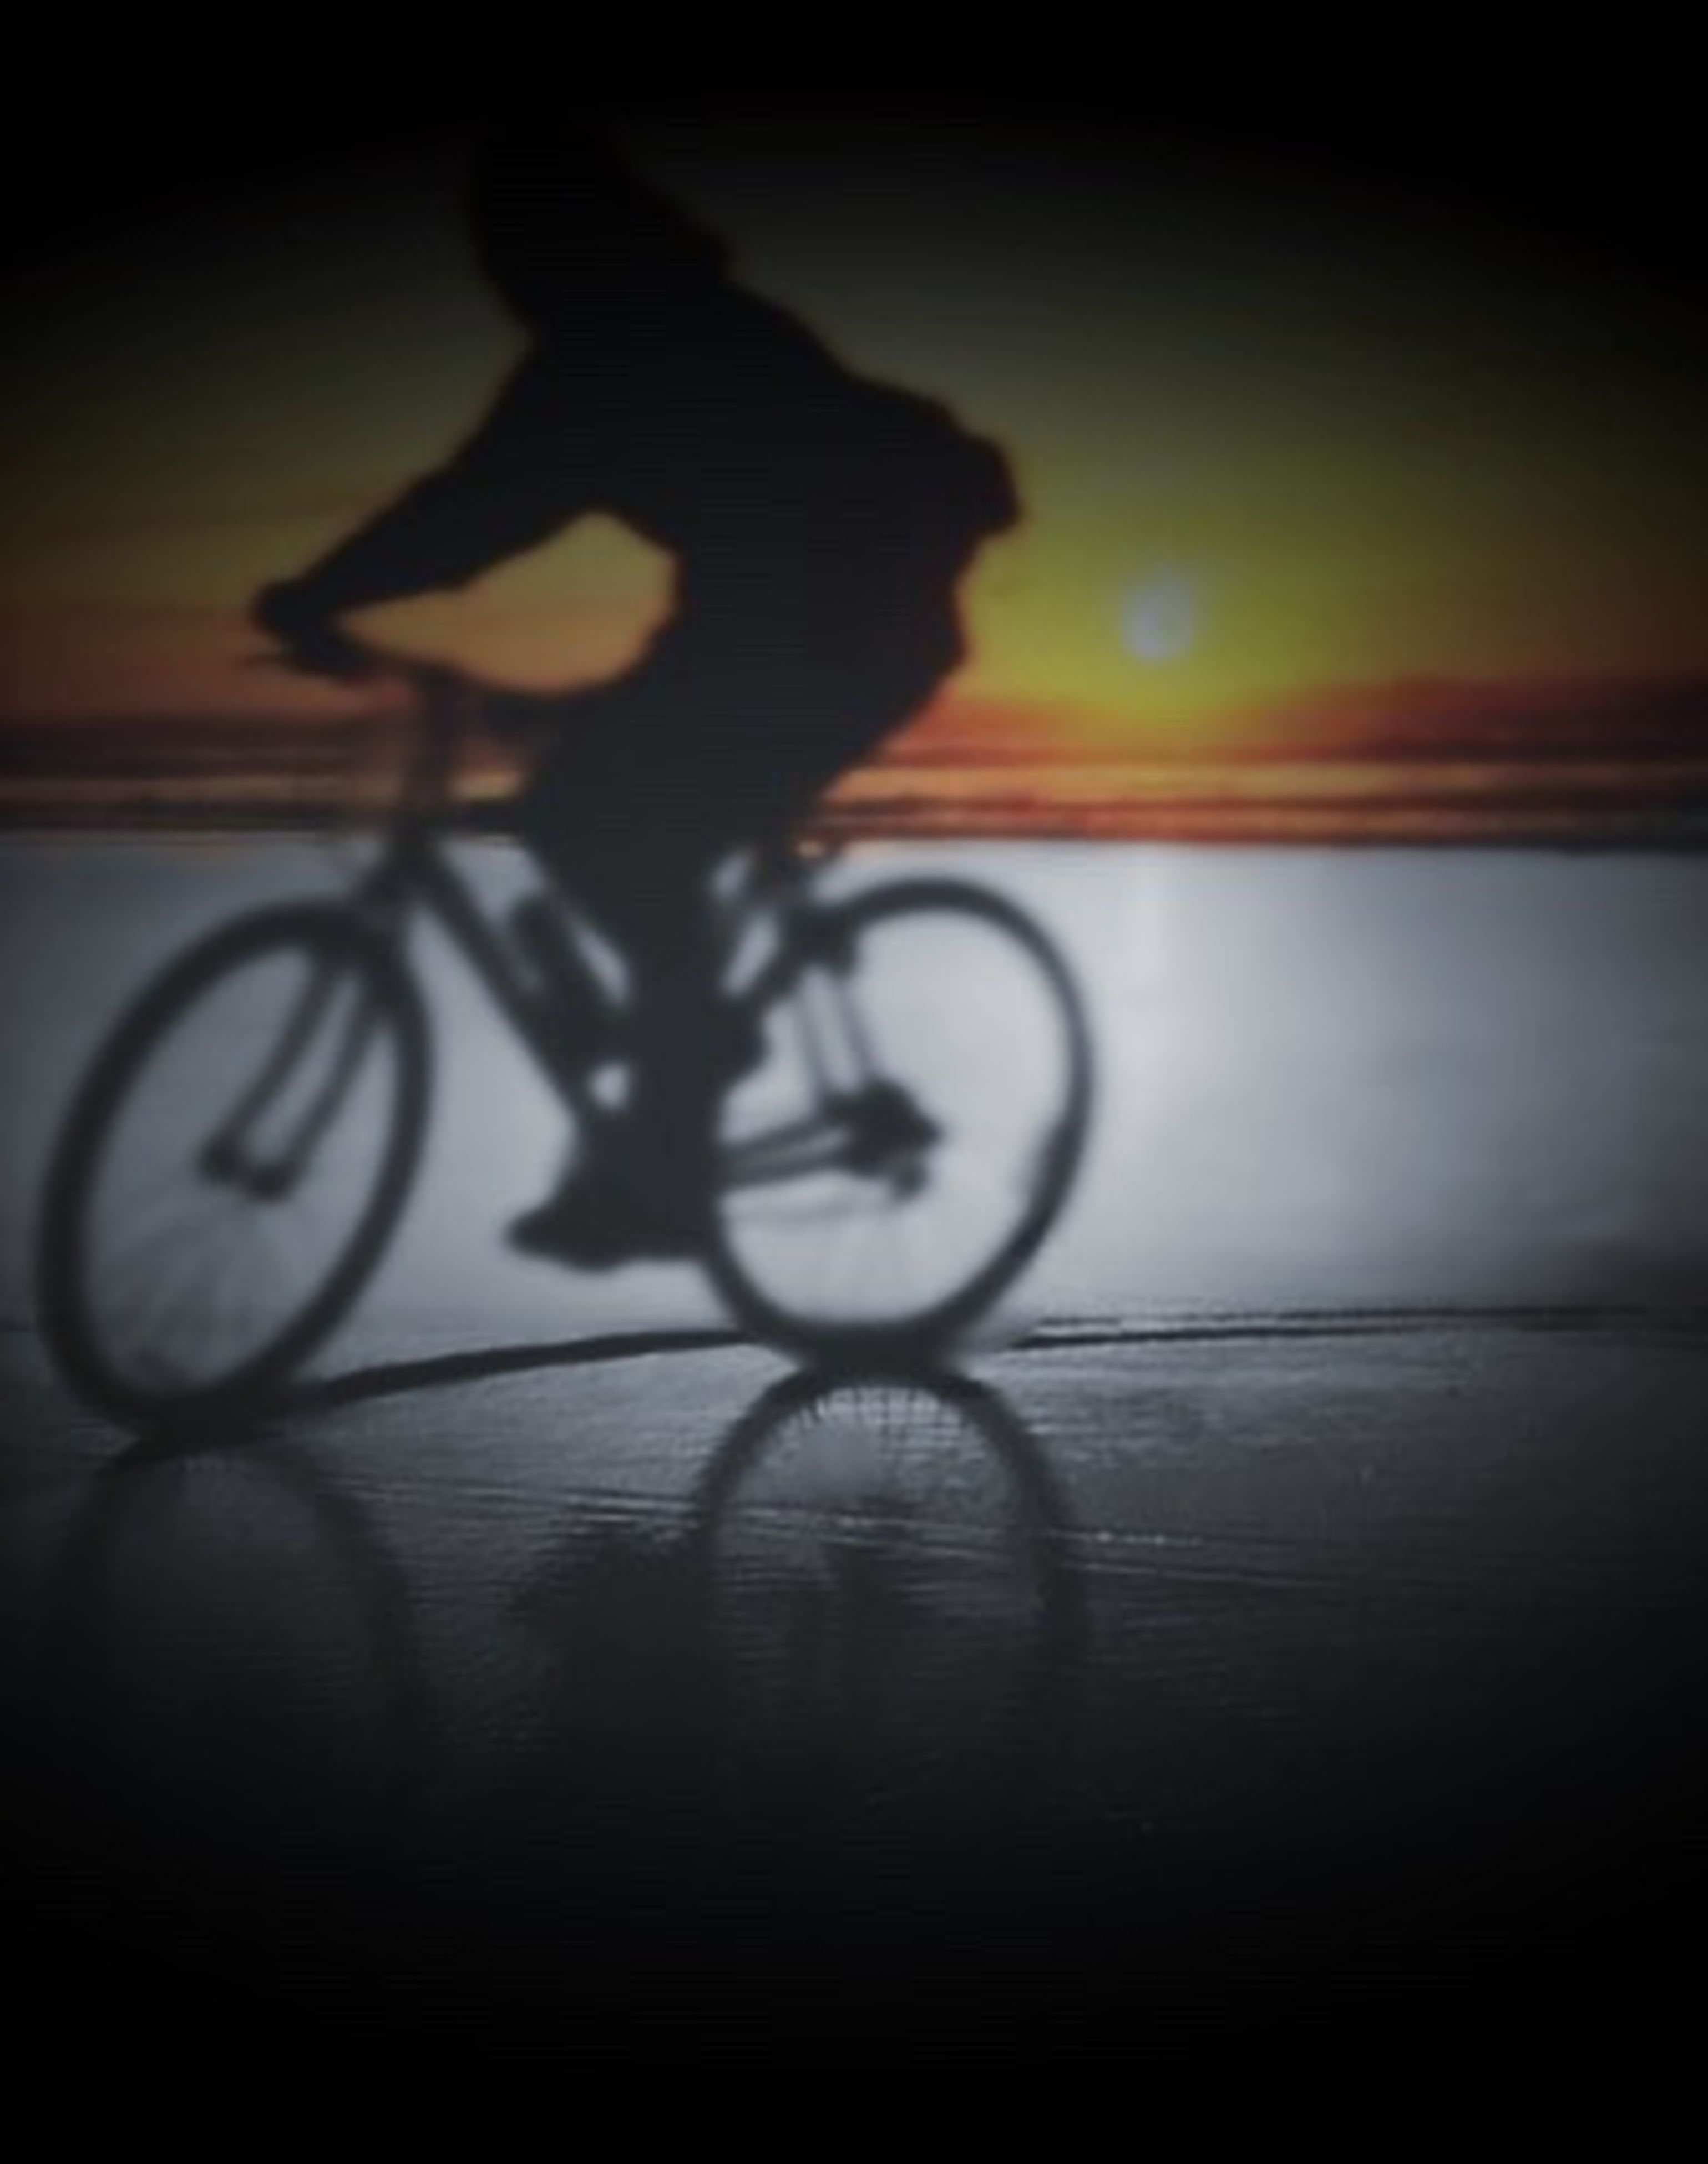 silhouette, bicycle, sunset, lifestyles, leisure activity, transportation, men, riding, full length, land vehicle, mode of transport, side view, cycling, unrecognizable person, on the move, sky, sport, street